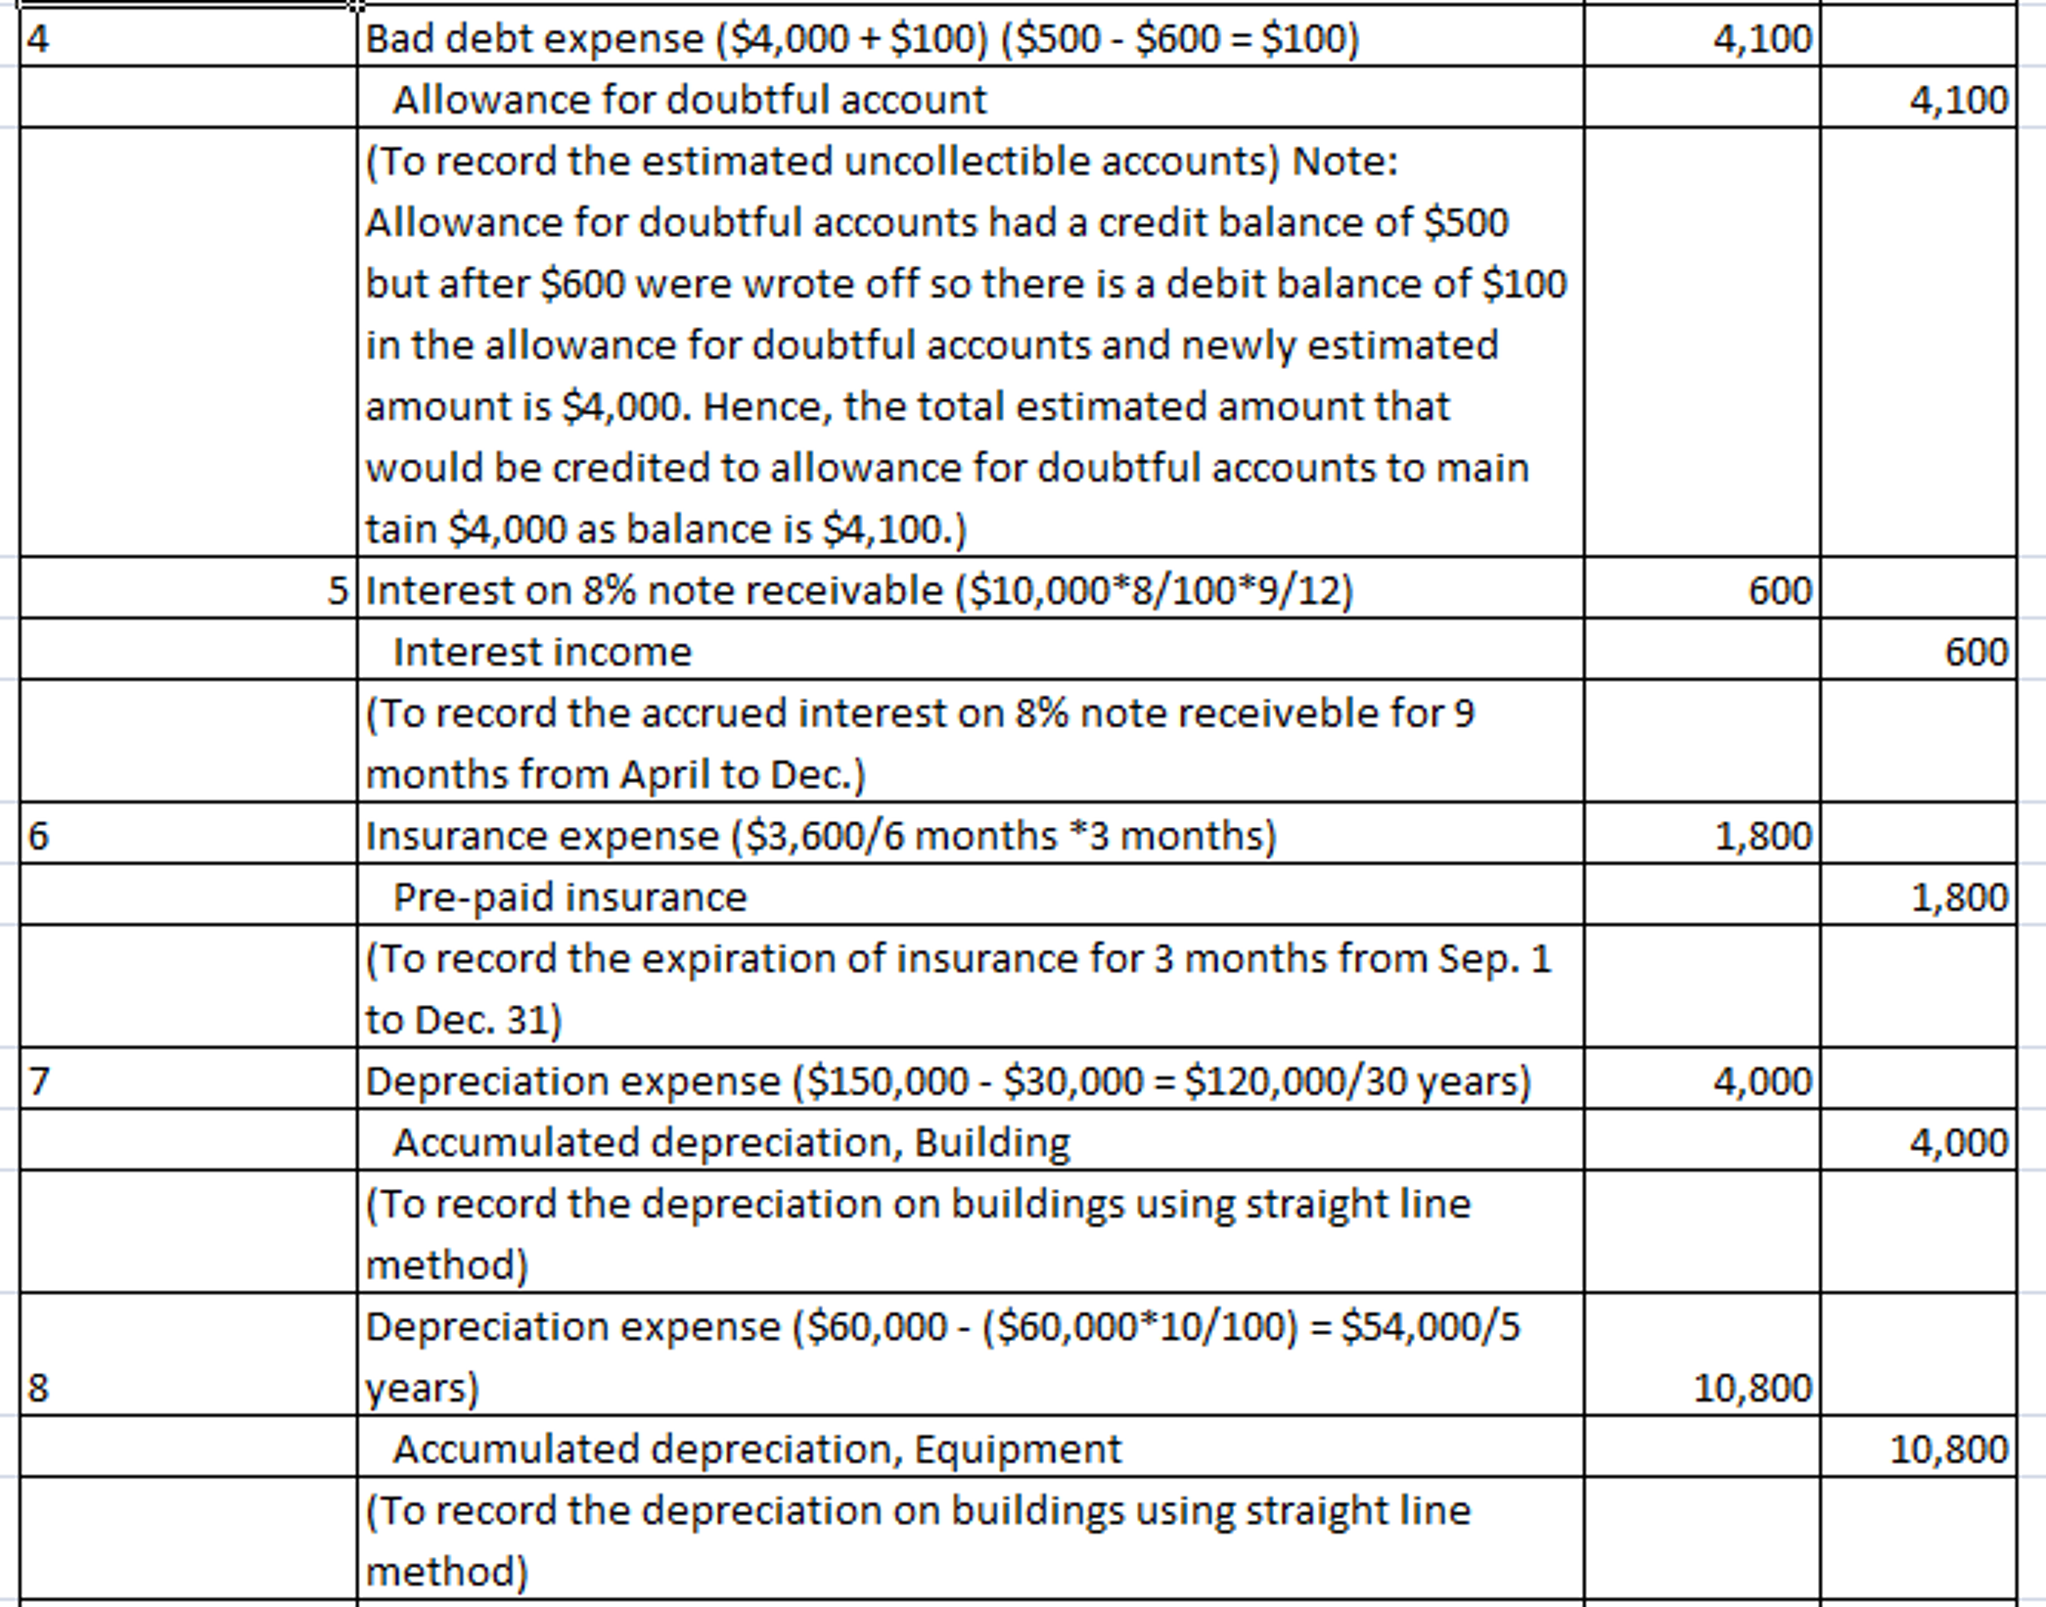 journalizing posting and preparing a trial balance appendix c Accounting 1 assignment: journalizing, posting and preparing a trial balance • complete p2-2a of financial accounting, using the templates in appendix c for your.